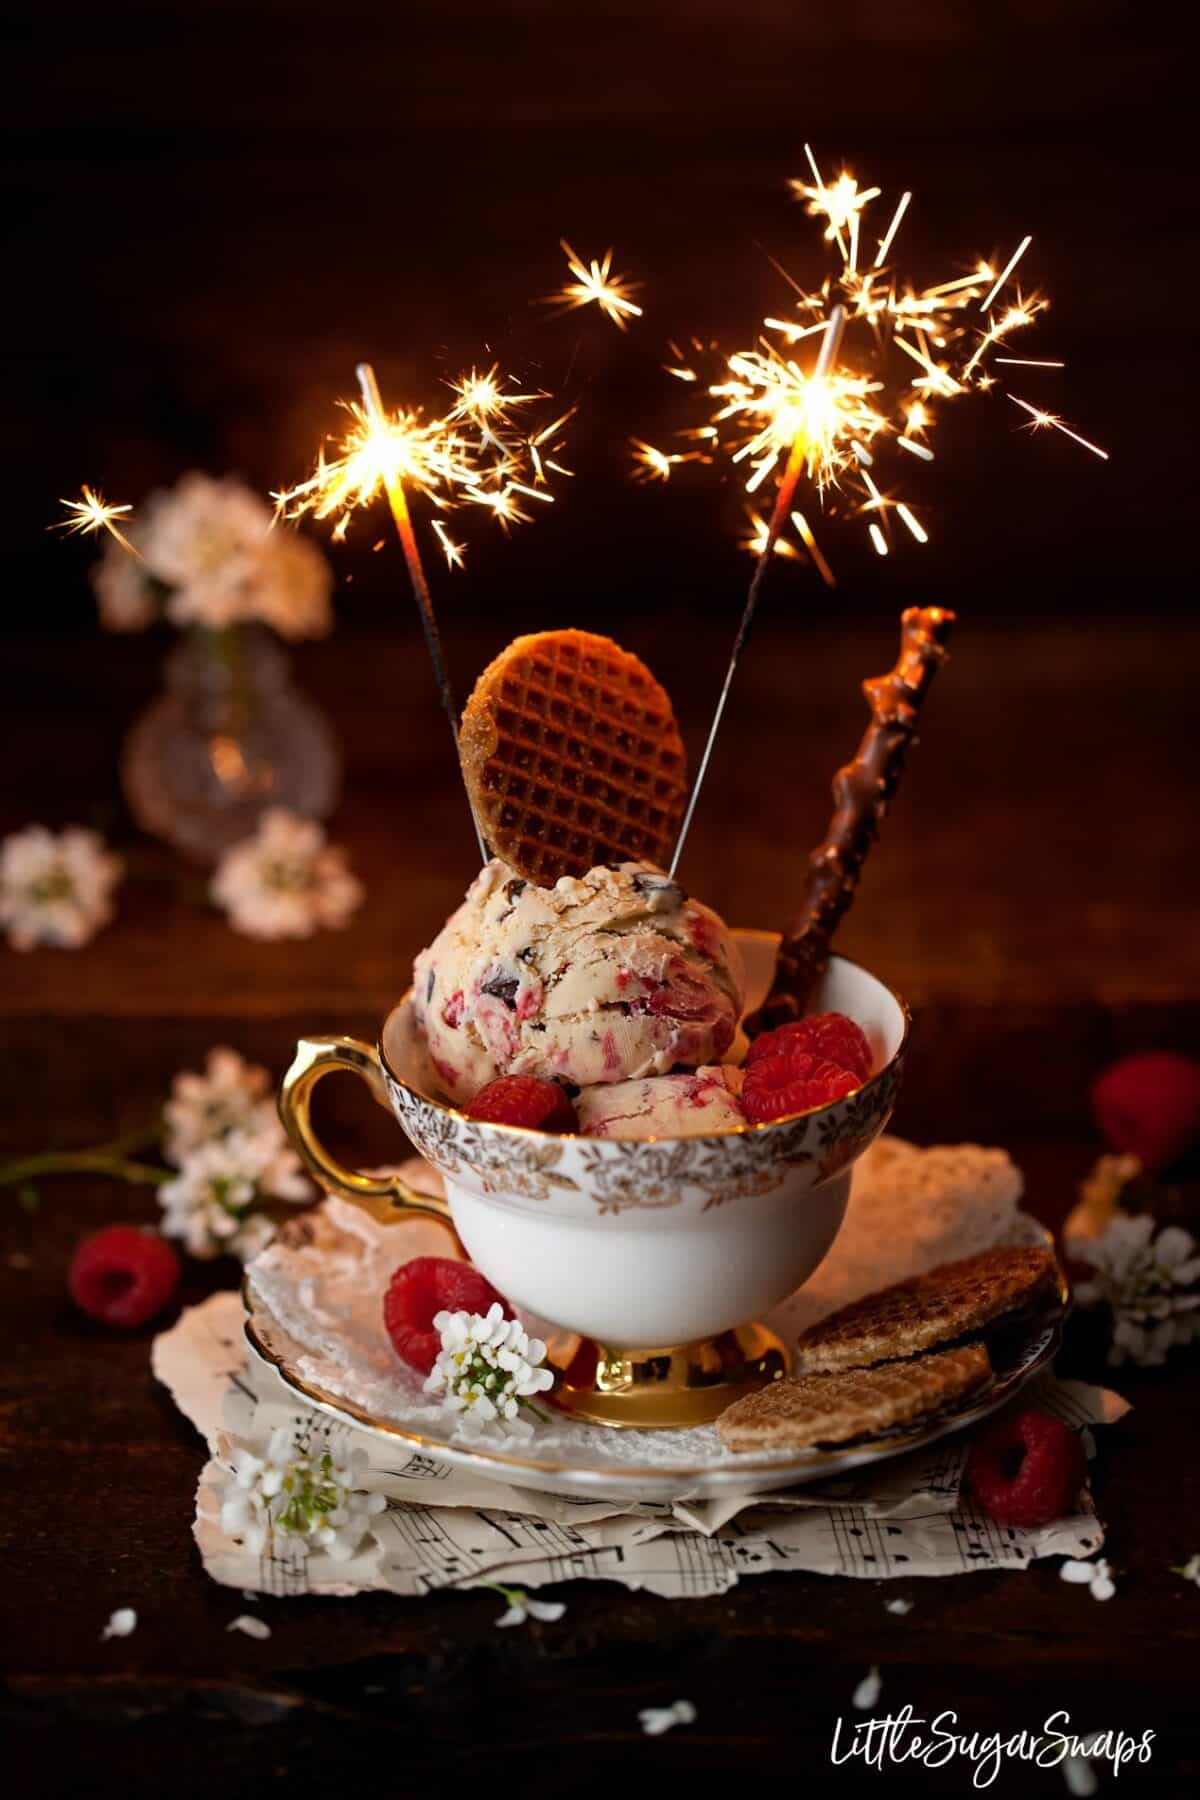 Malted Milk Ice Cream in a bowl with sparklers